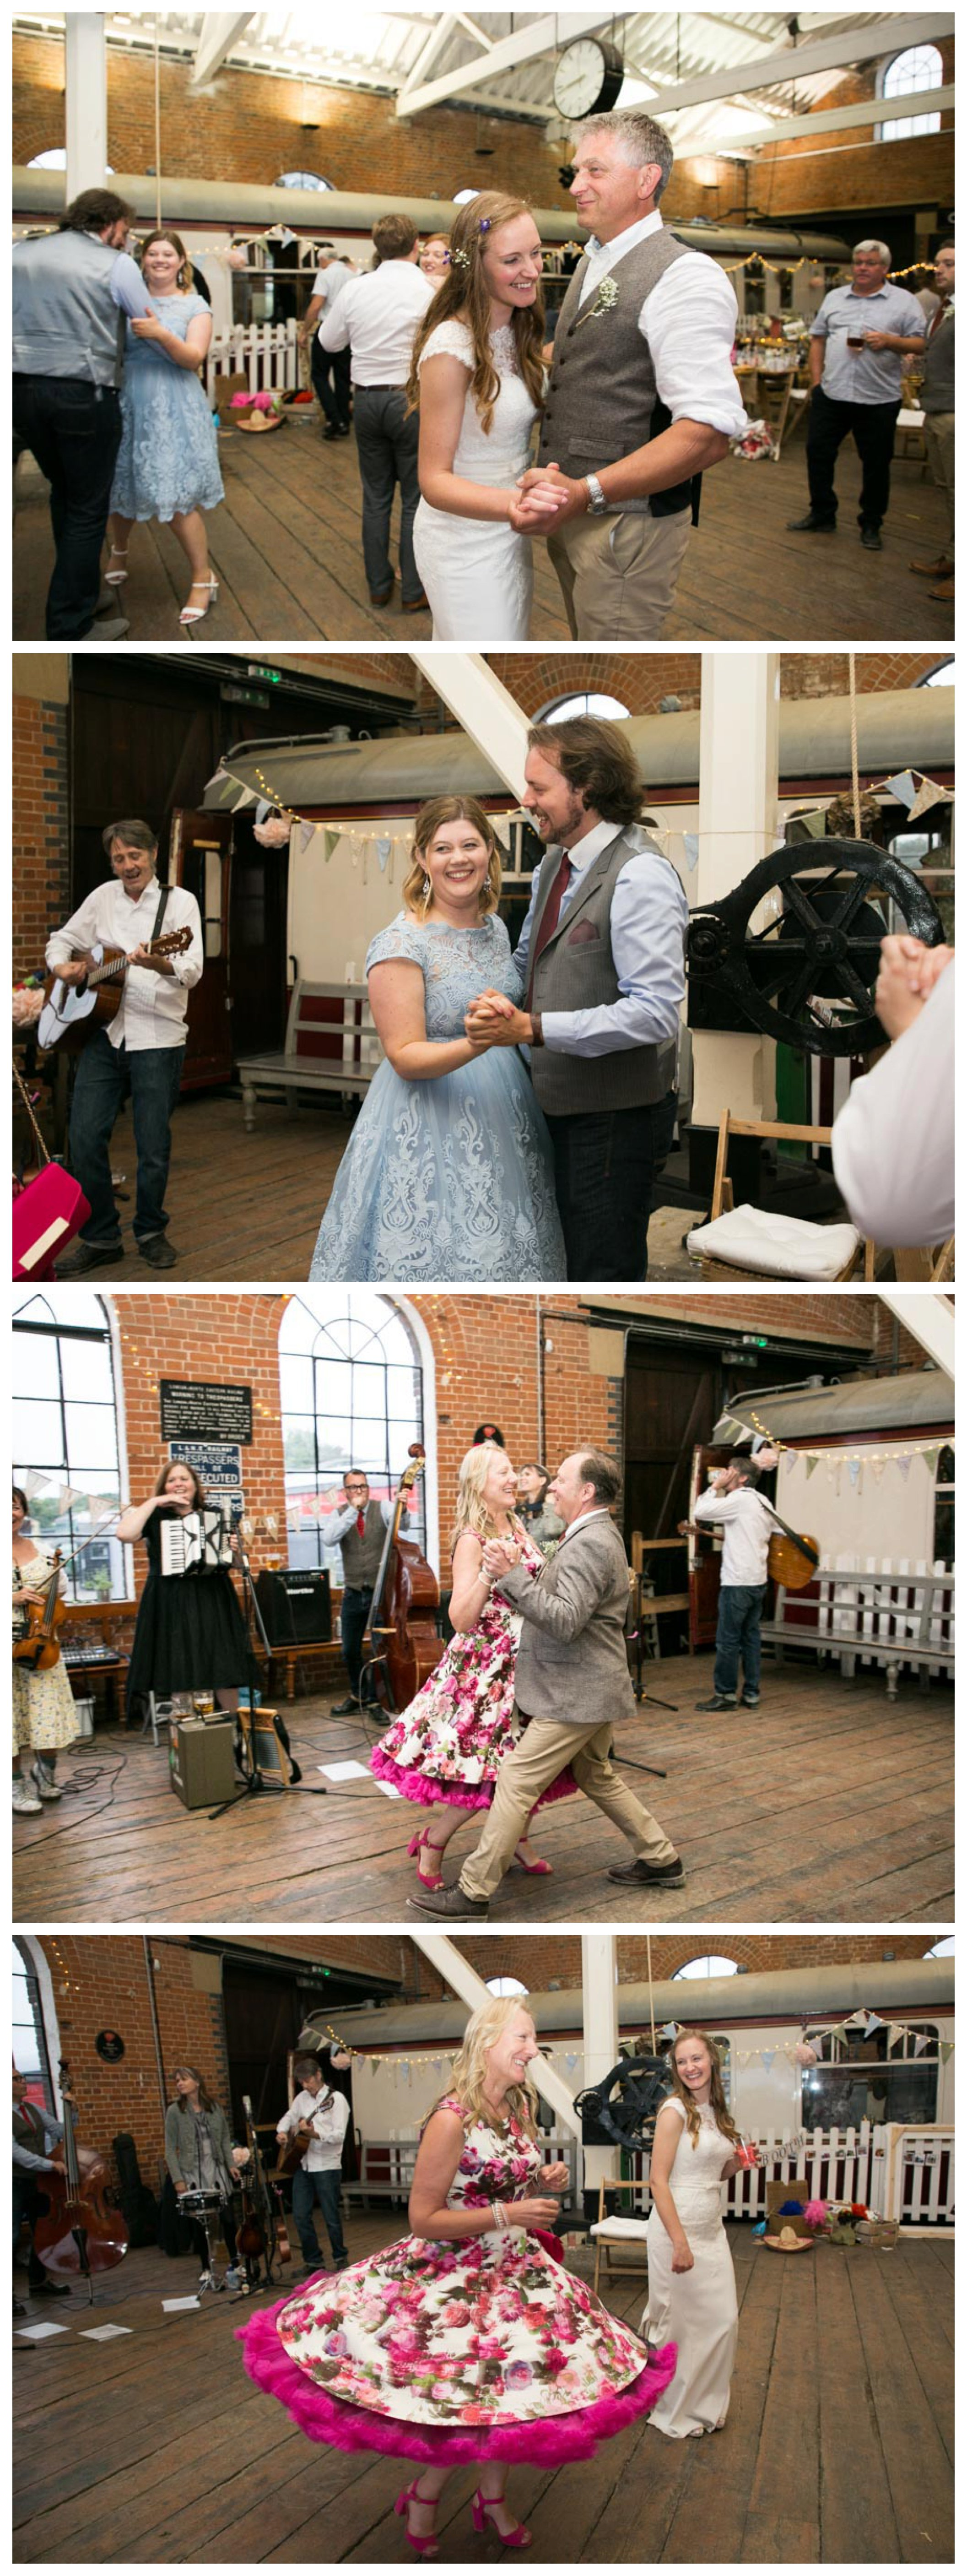 dancing to skiffle band at railyway museum wedding